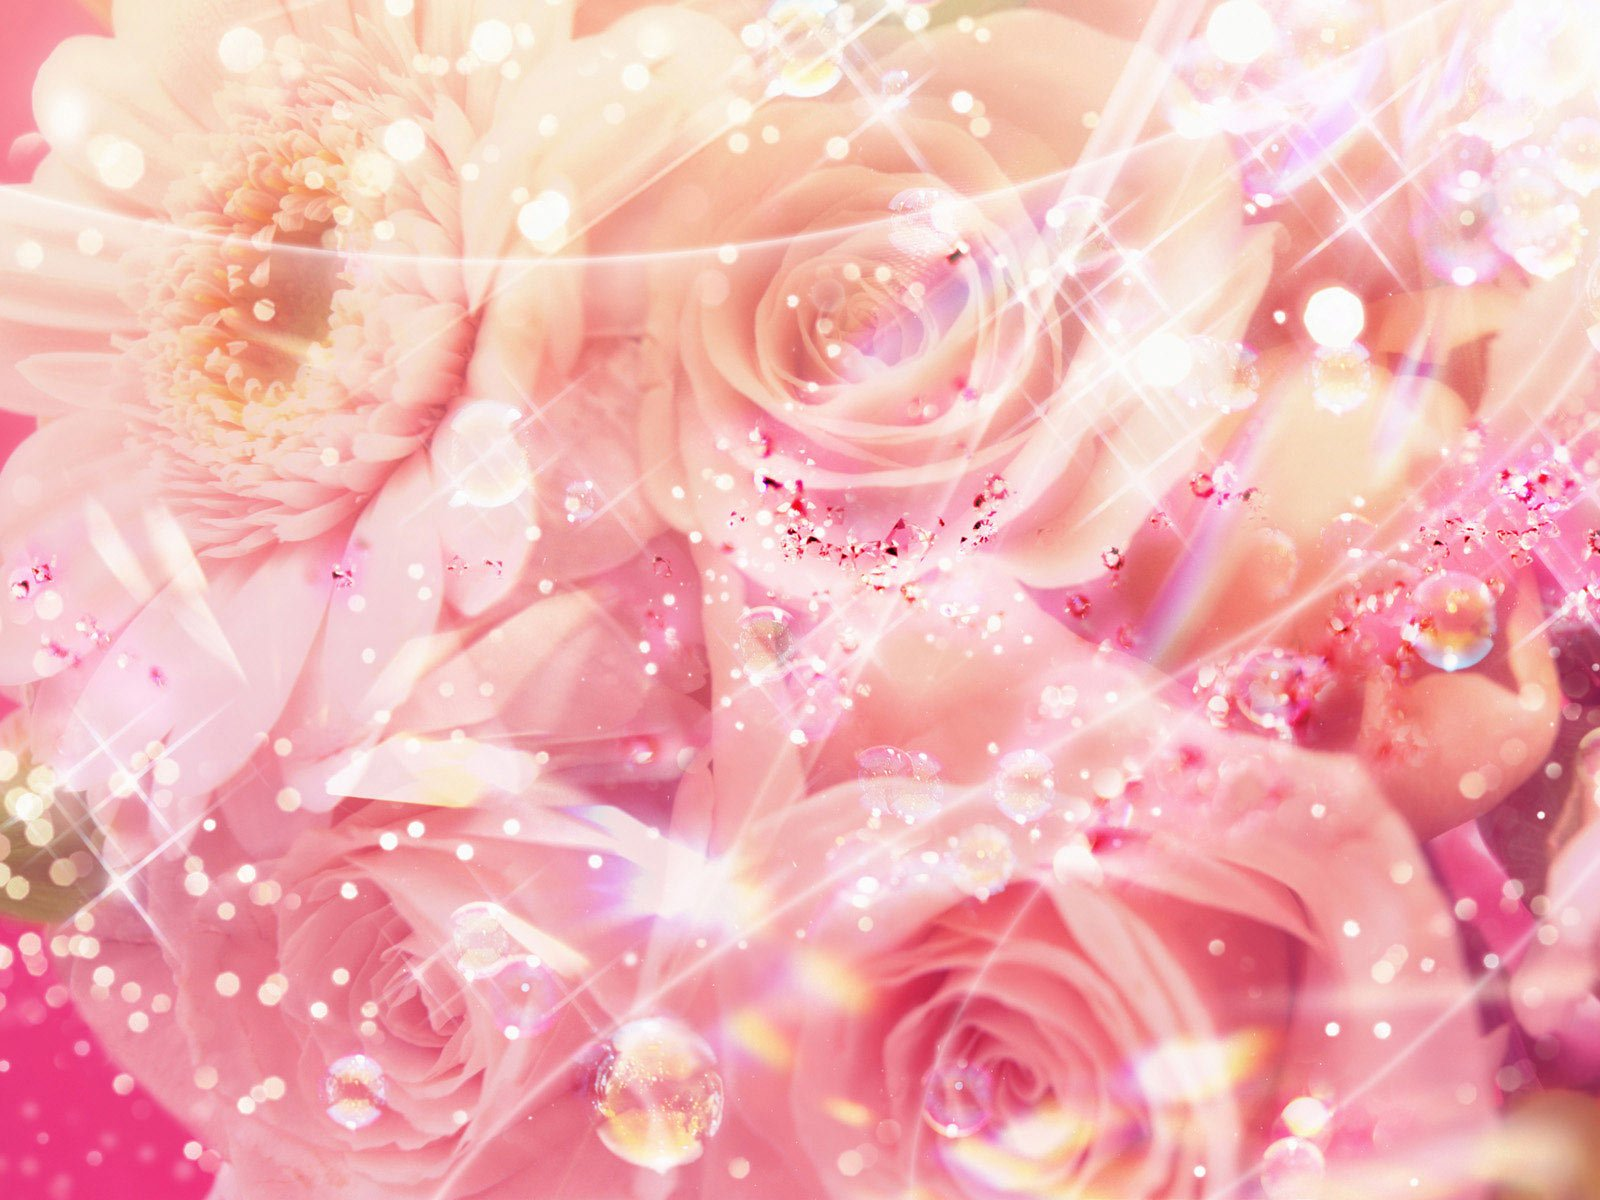 Download Pink Roses Wallpaper in high resolution for Get Pink 1600x1200